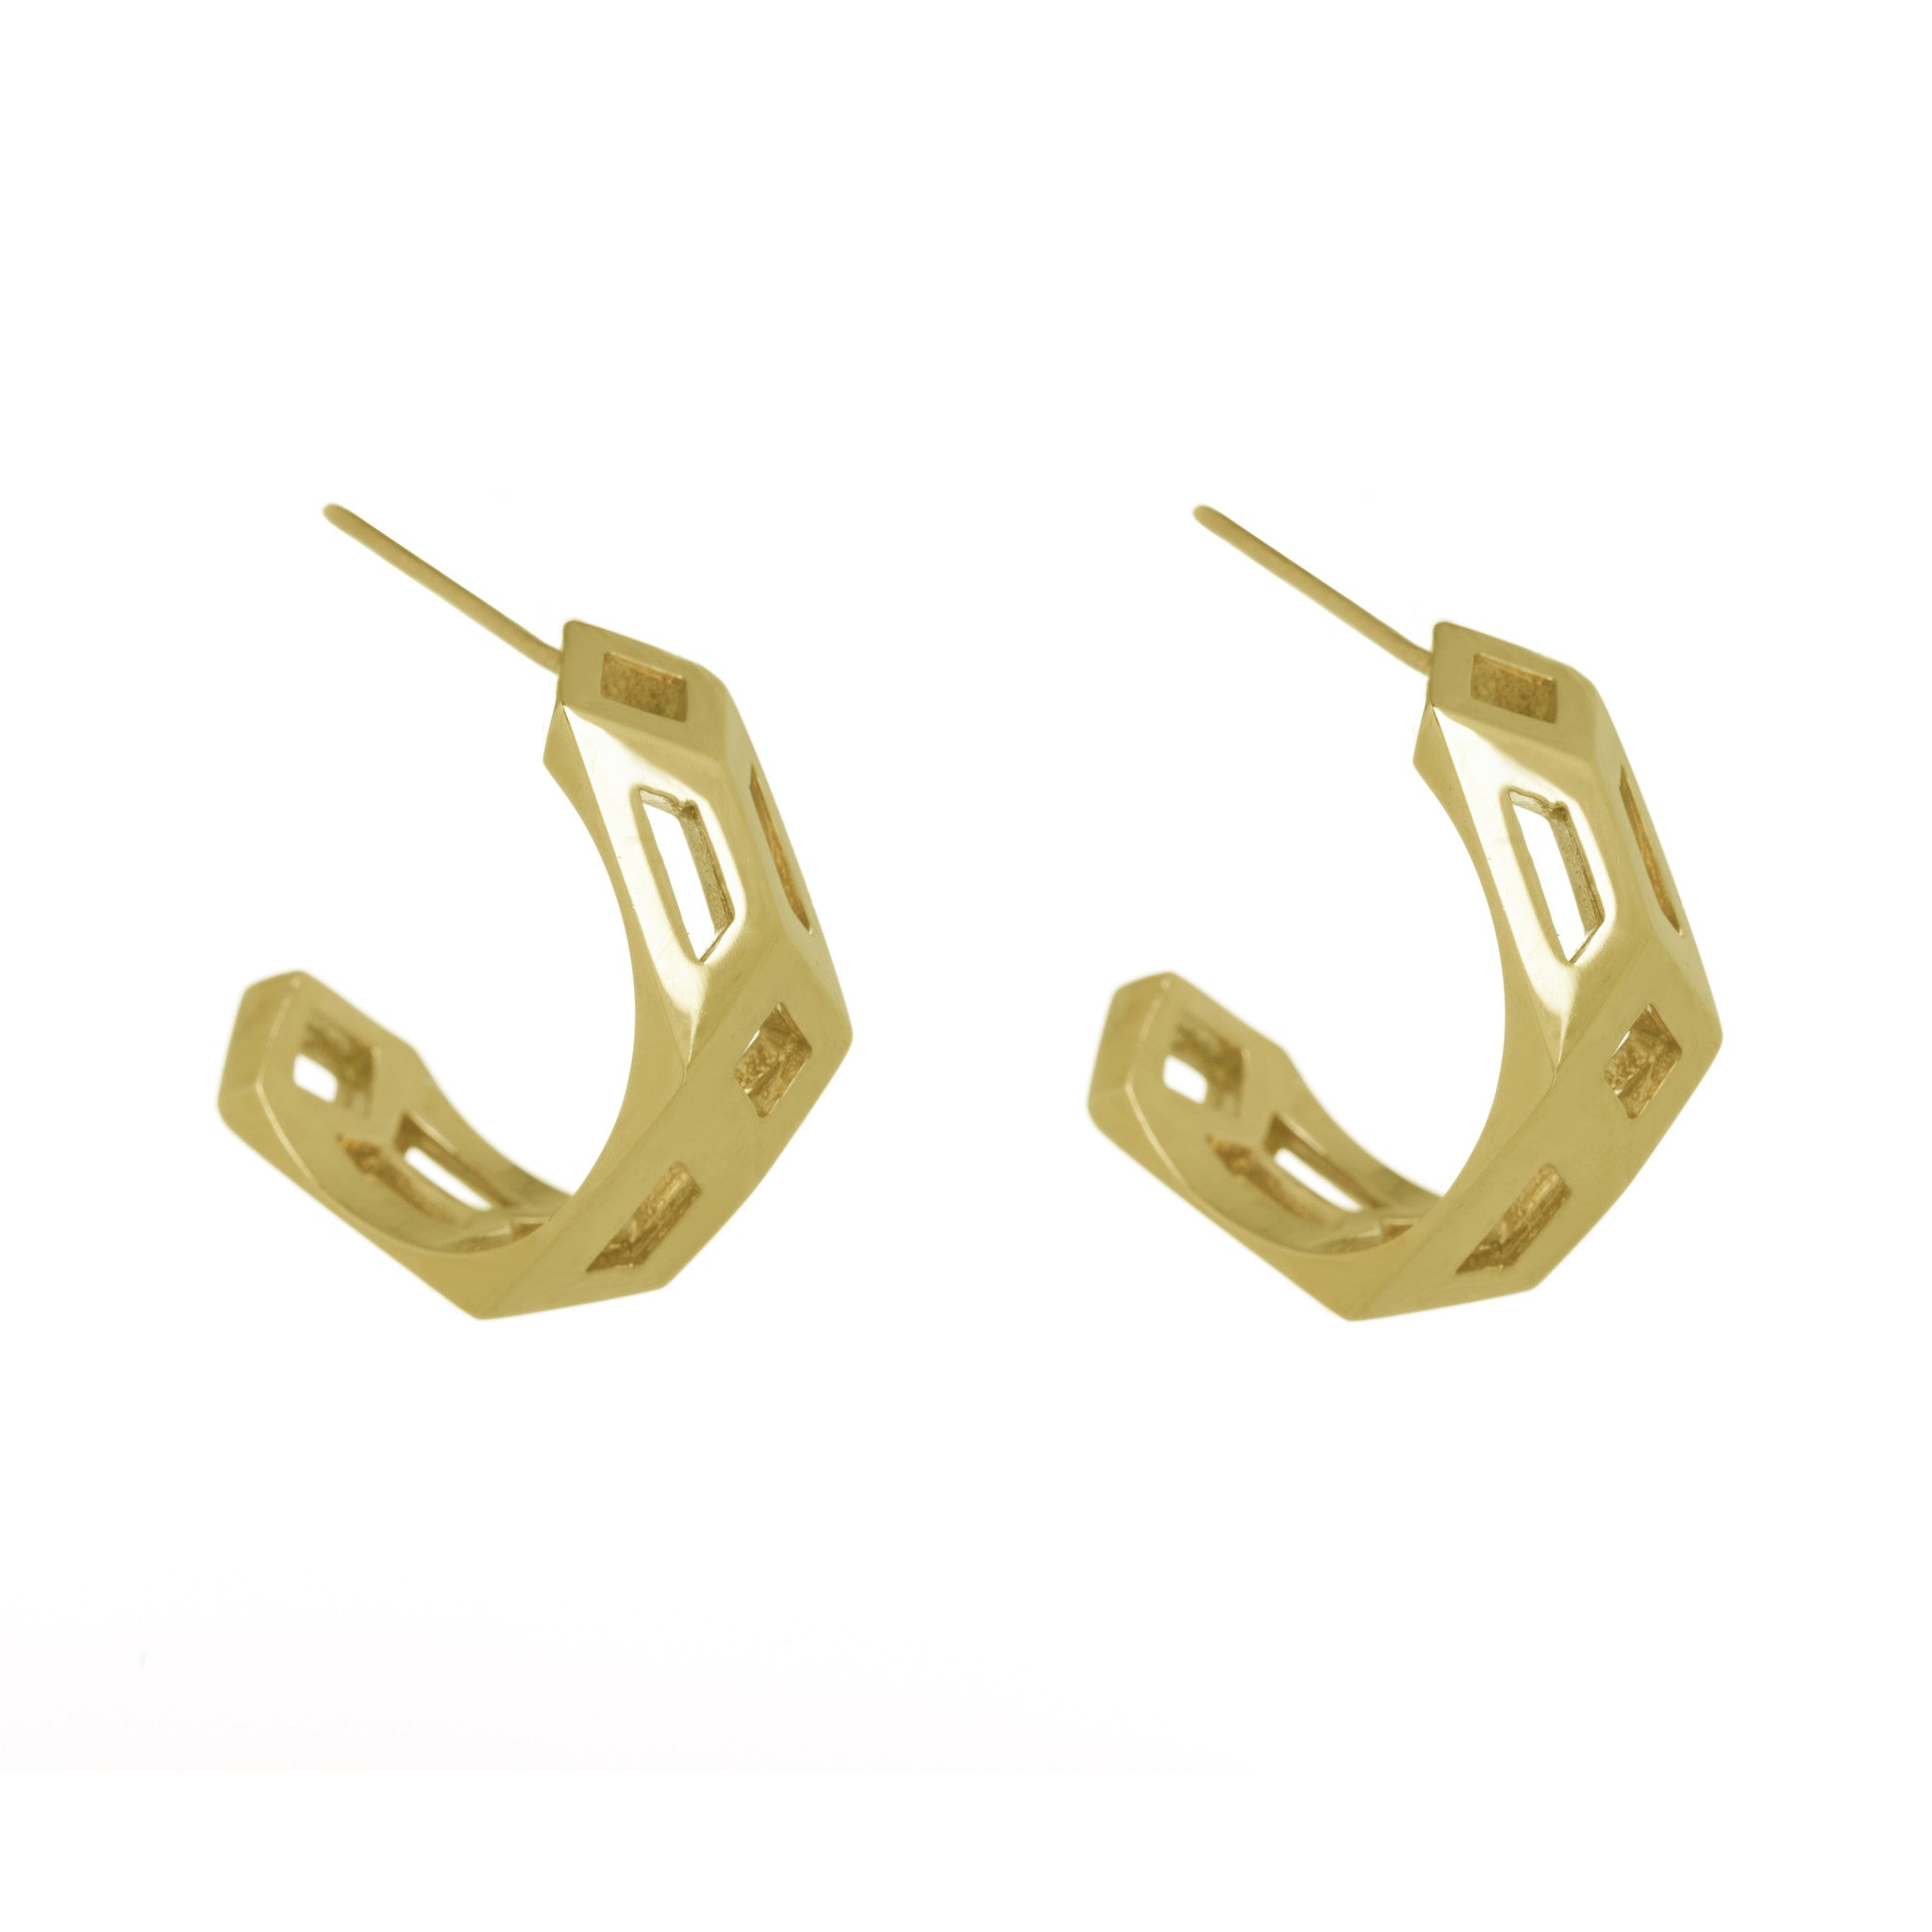 Gold Metric Hoops-Earrings-London Rocks Jewellery